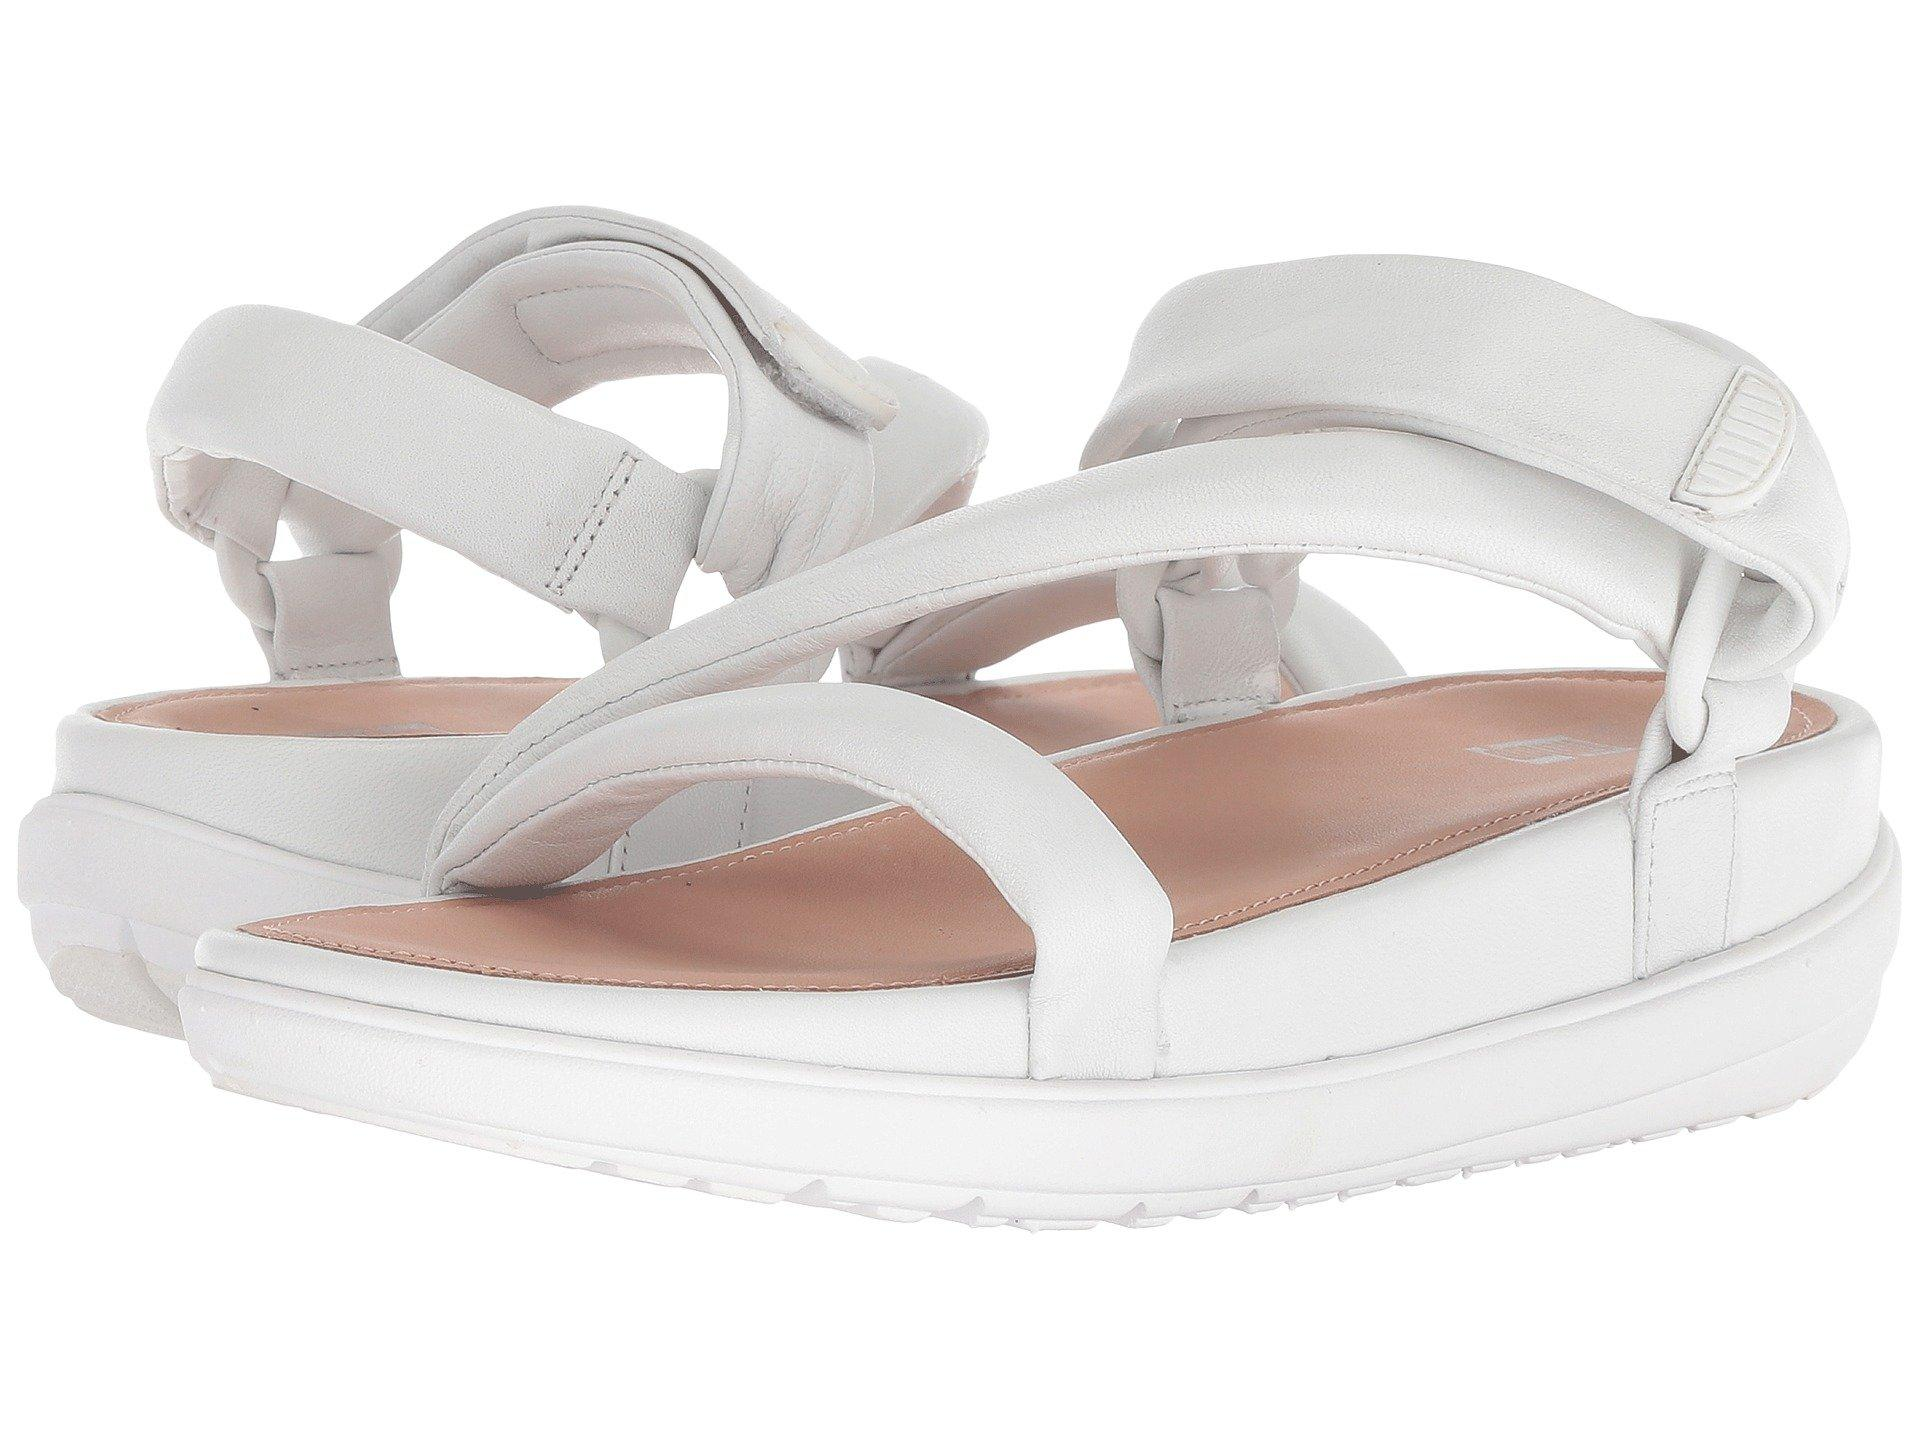 7971c28faff8b3 Lyst - Fitflop Loosh Luxetm Z-strap Leather Sandals in White - Save 43%